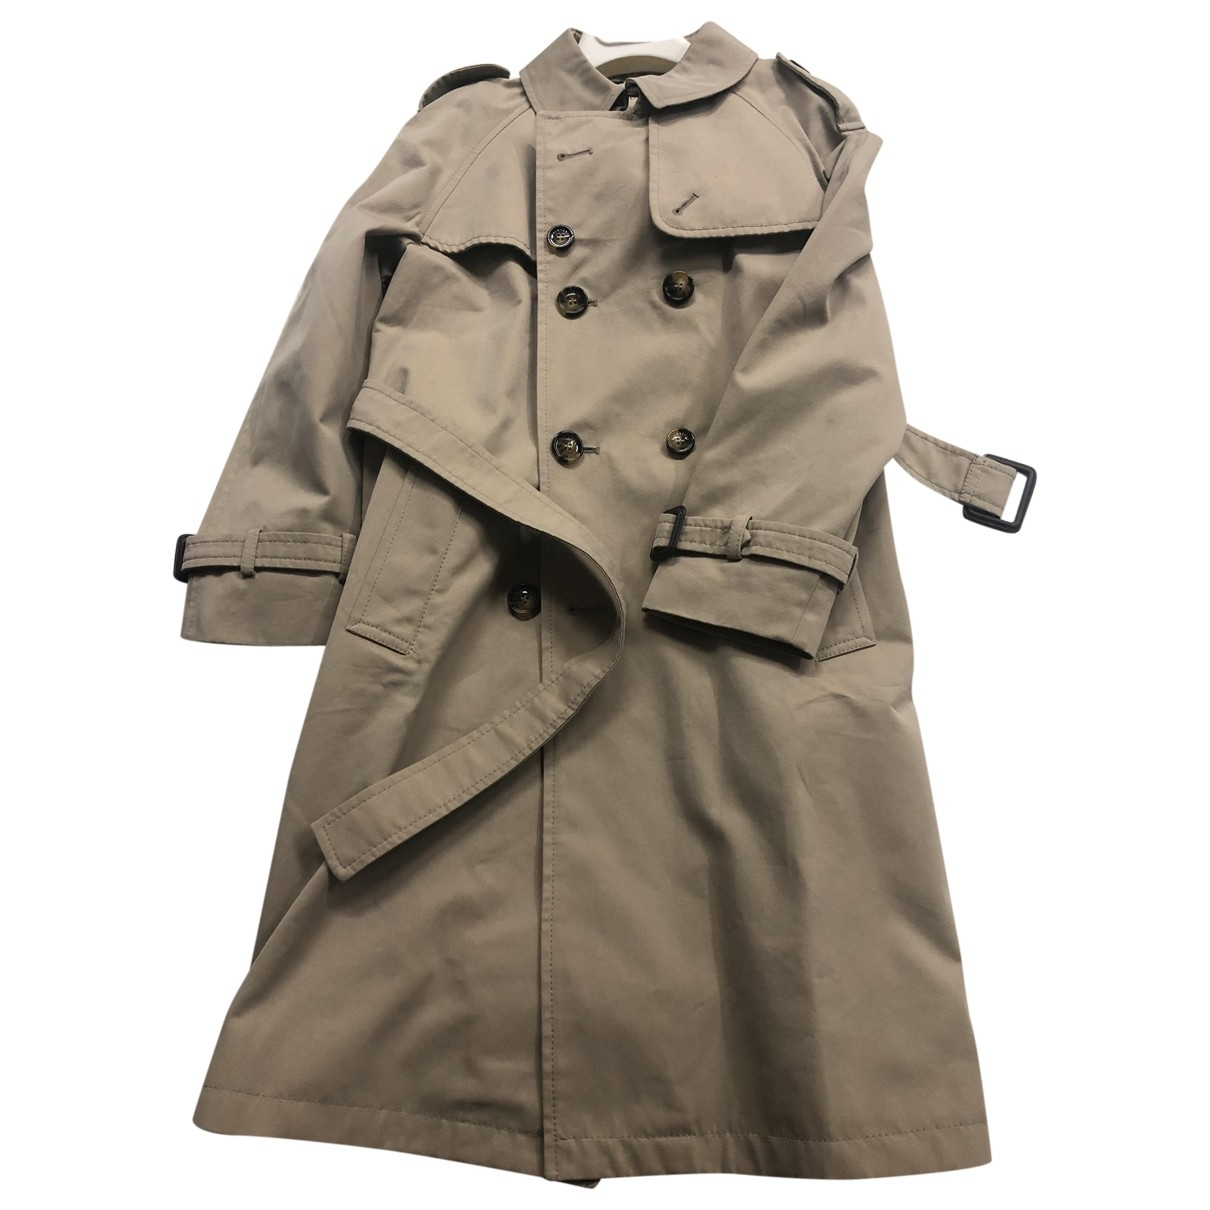 Burberry \N Beige Cotton jacket & coat for Kids 8 years - until 50 inches UK